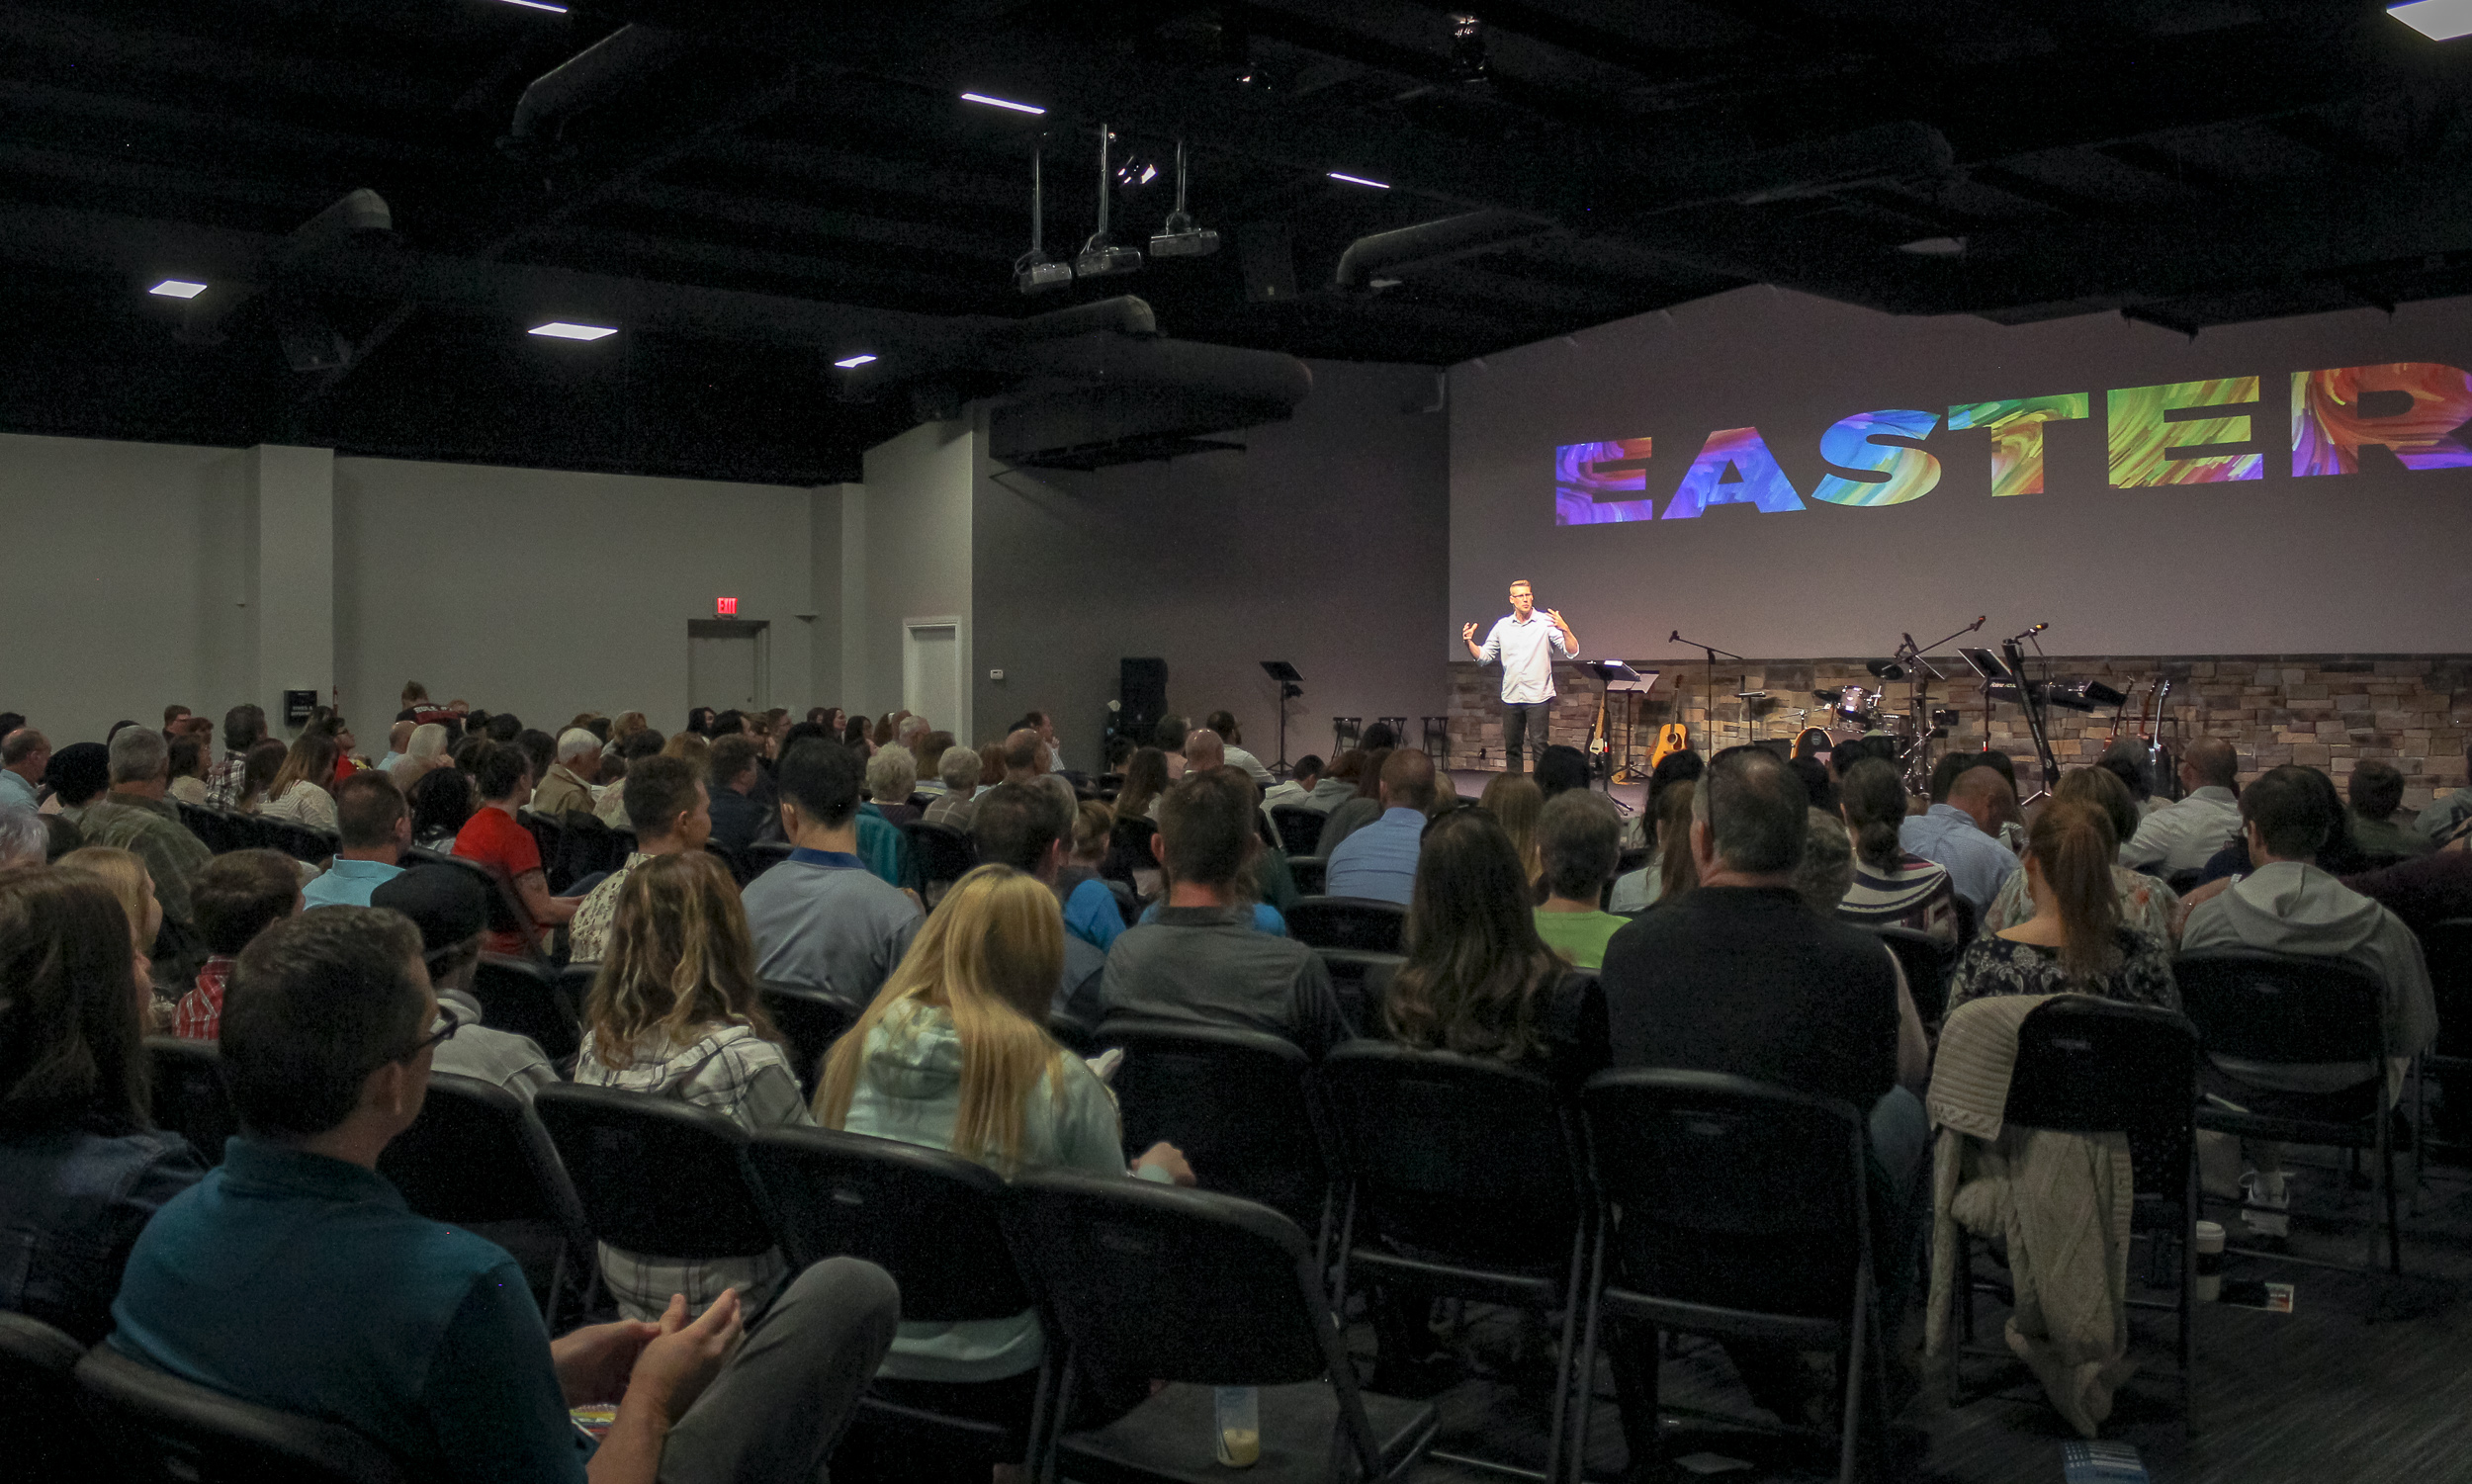 Easter Service on April 21, 2019 in our current Worship Center.